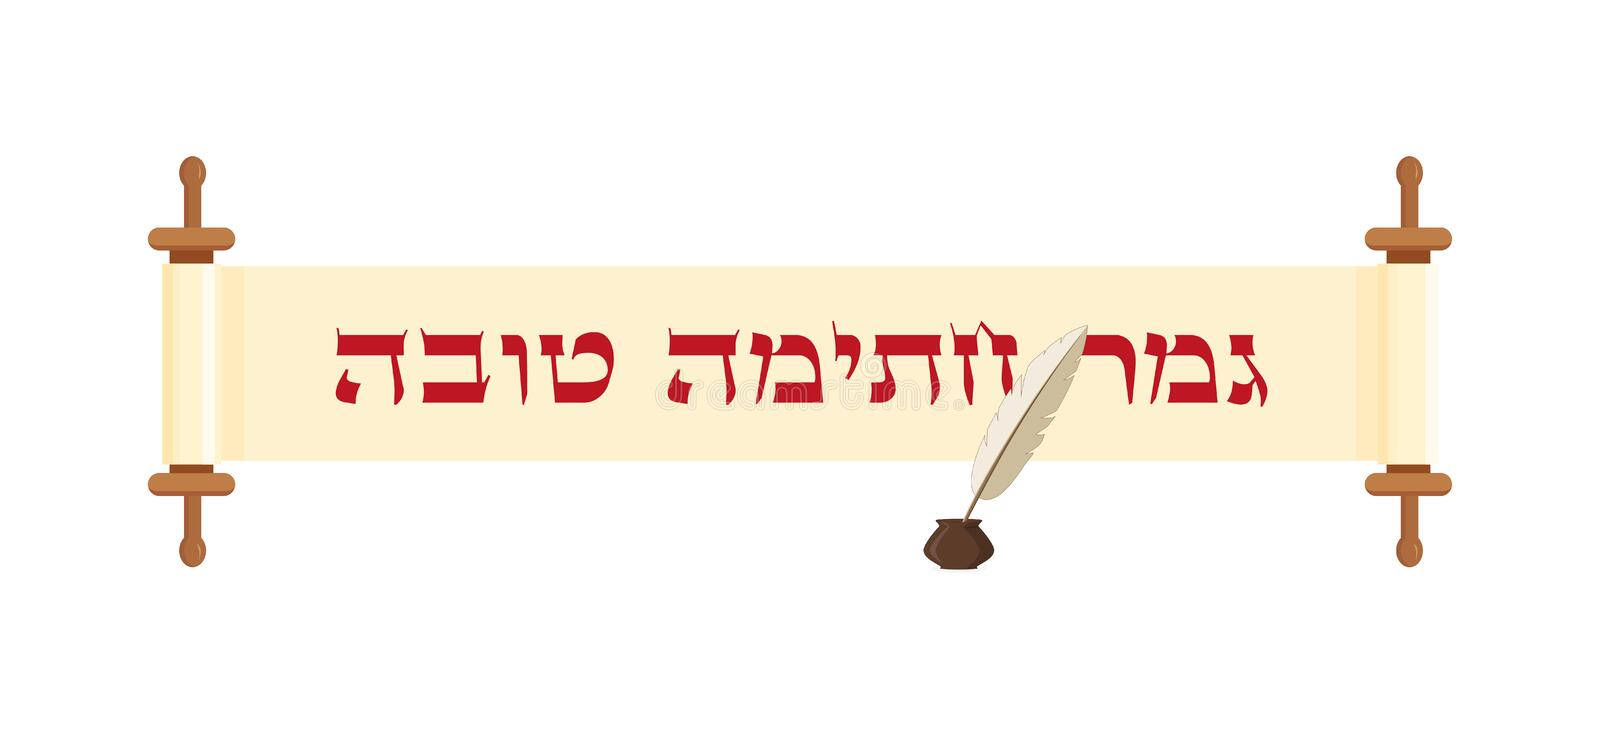 Jewish holiday, Yom Kippur, banner with scroll. Jewish holiday of Yom Kippur, greeting banner with scroll, Jewish greeting - May you be inscribed for good in the royalty free illustration